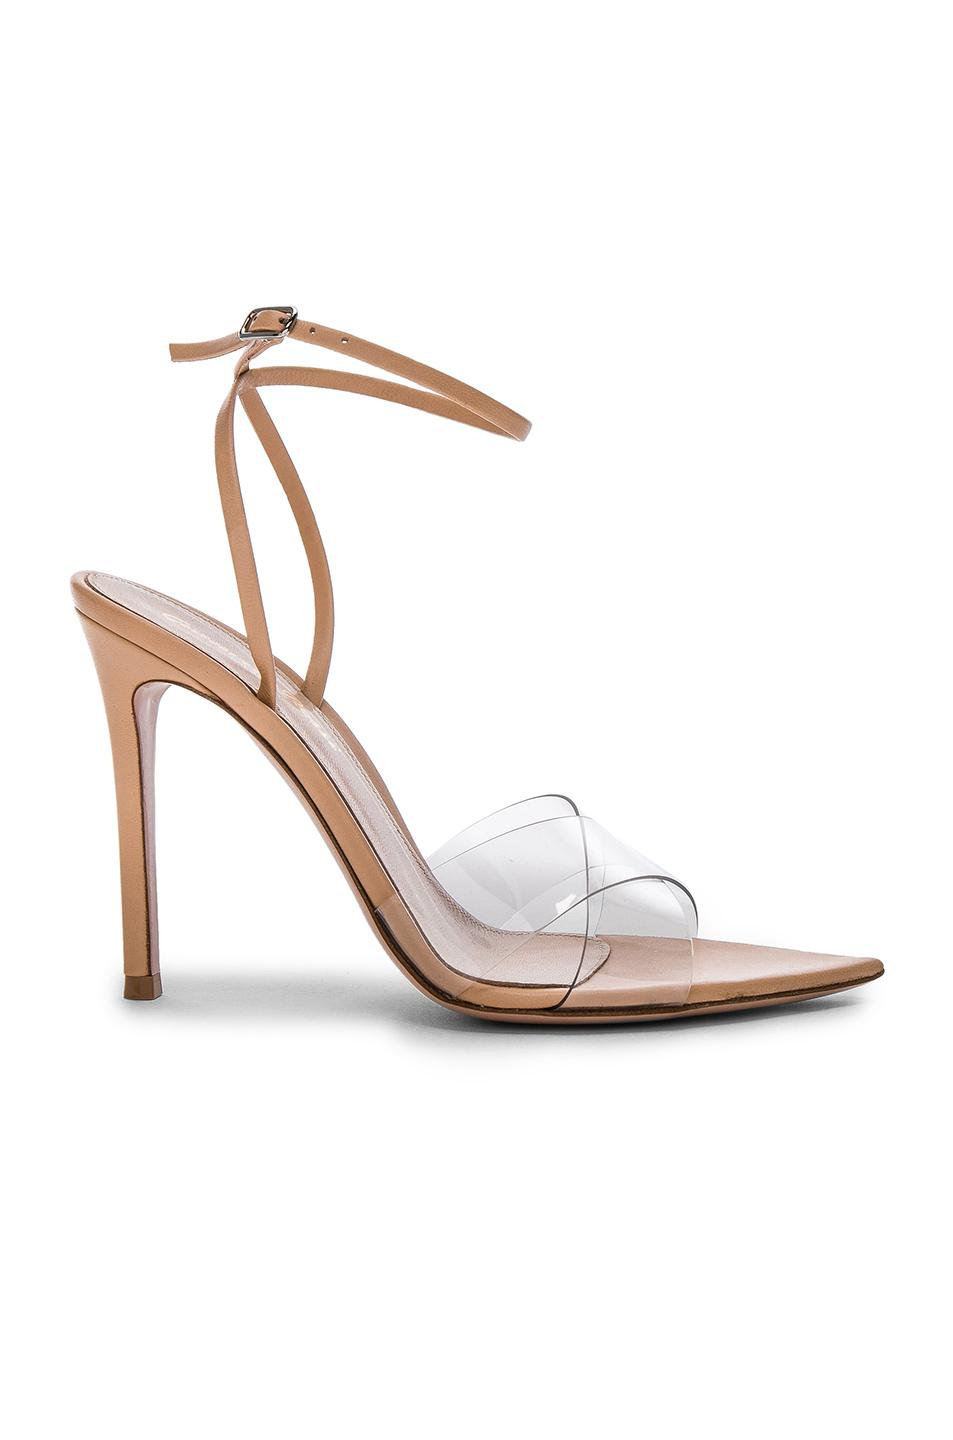 Gianvito Rossi Crossover Ankle Strap Sandals cheap sale shop where to buy sale for nice cheap online store Manchester collections cheap online Mlou3c